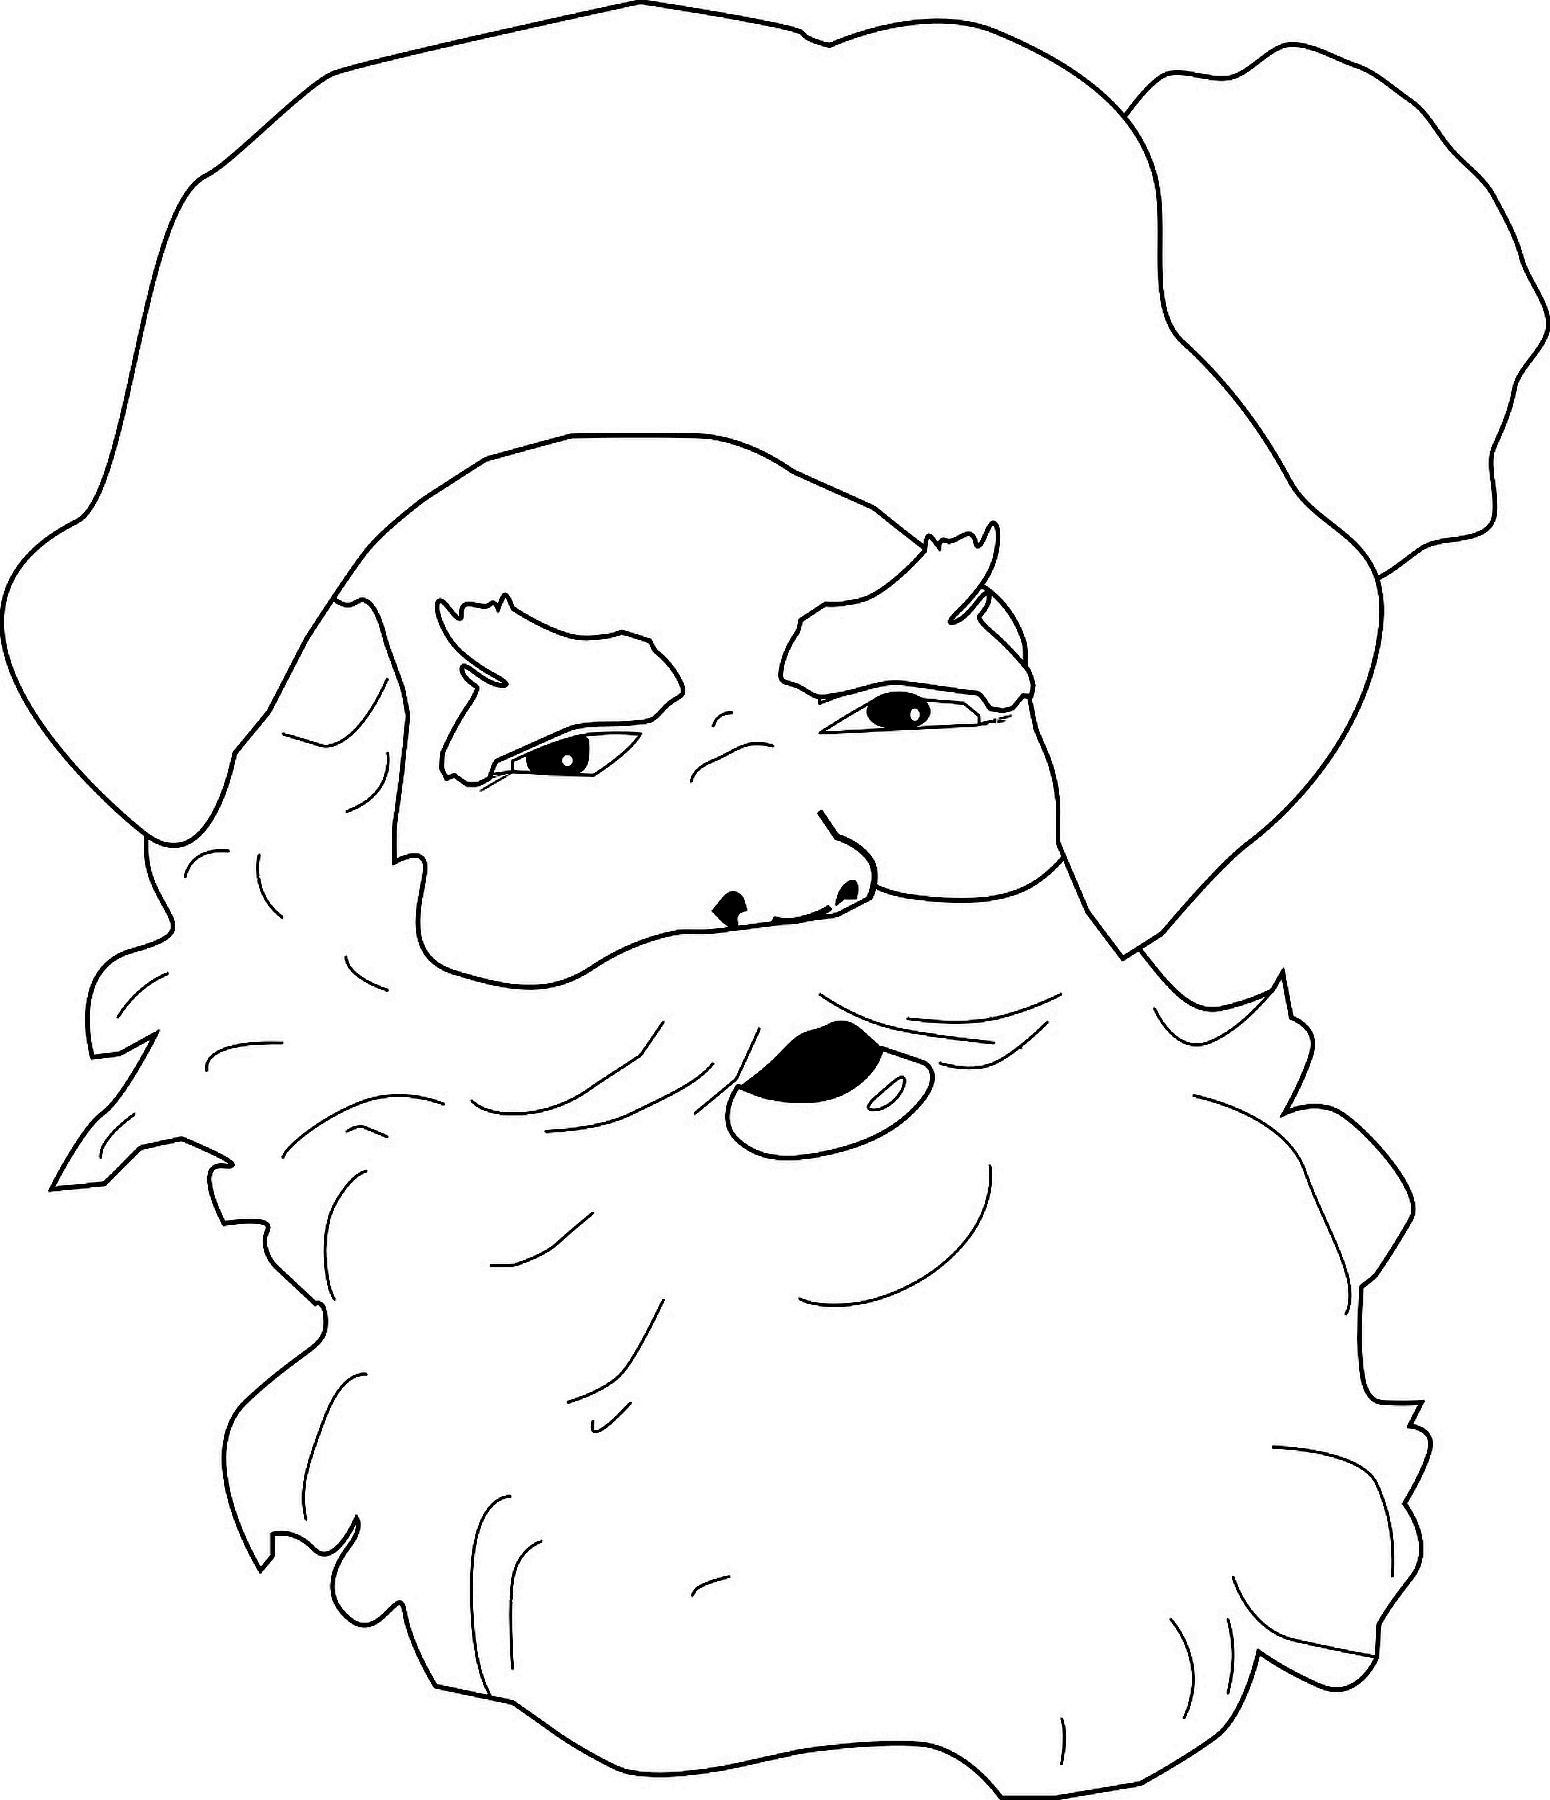 Free Santa Claus Coloring Page | Multi Use Line Patterns | Pinterest ...